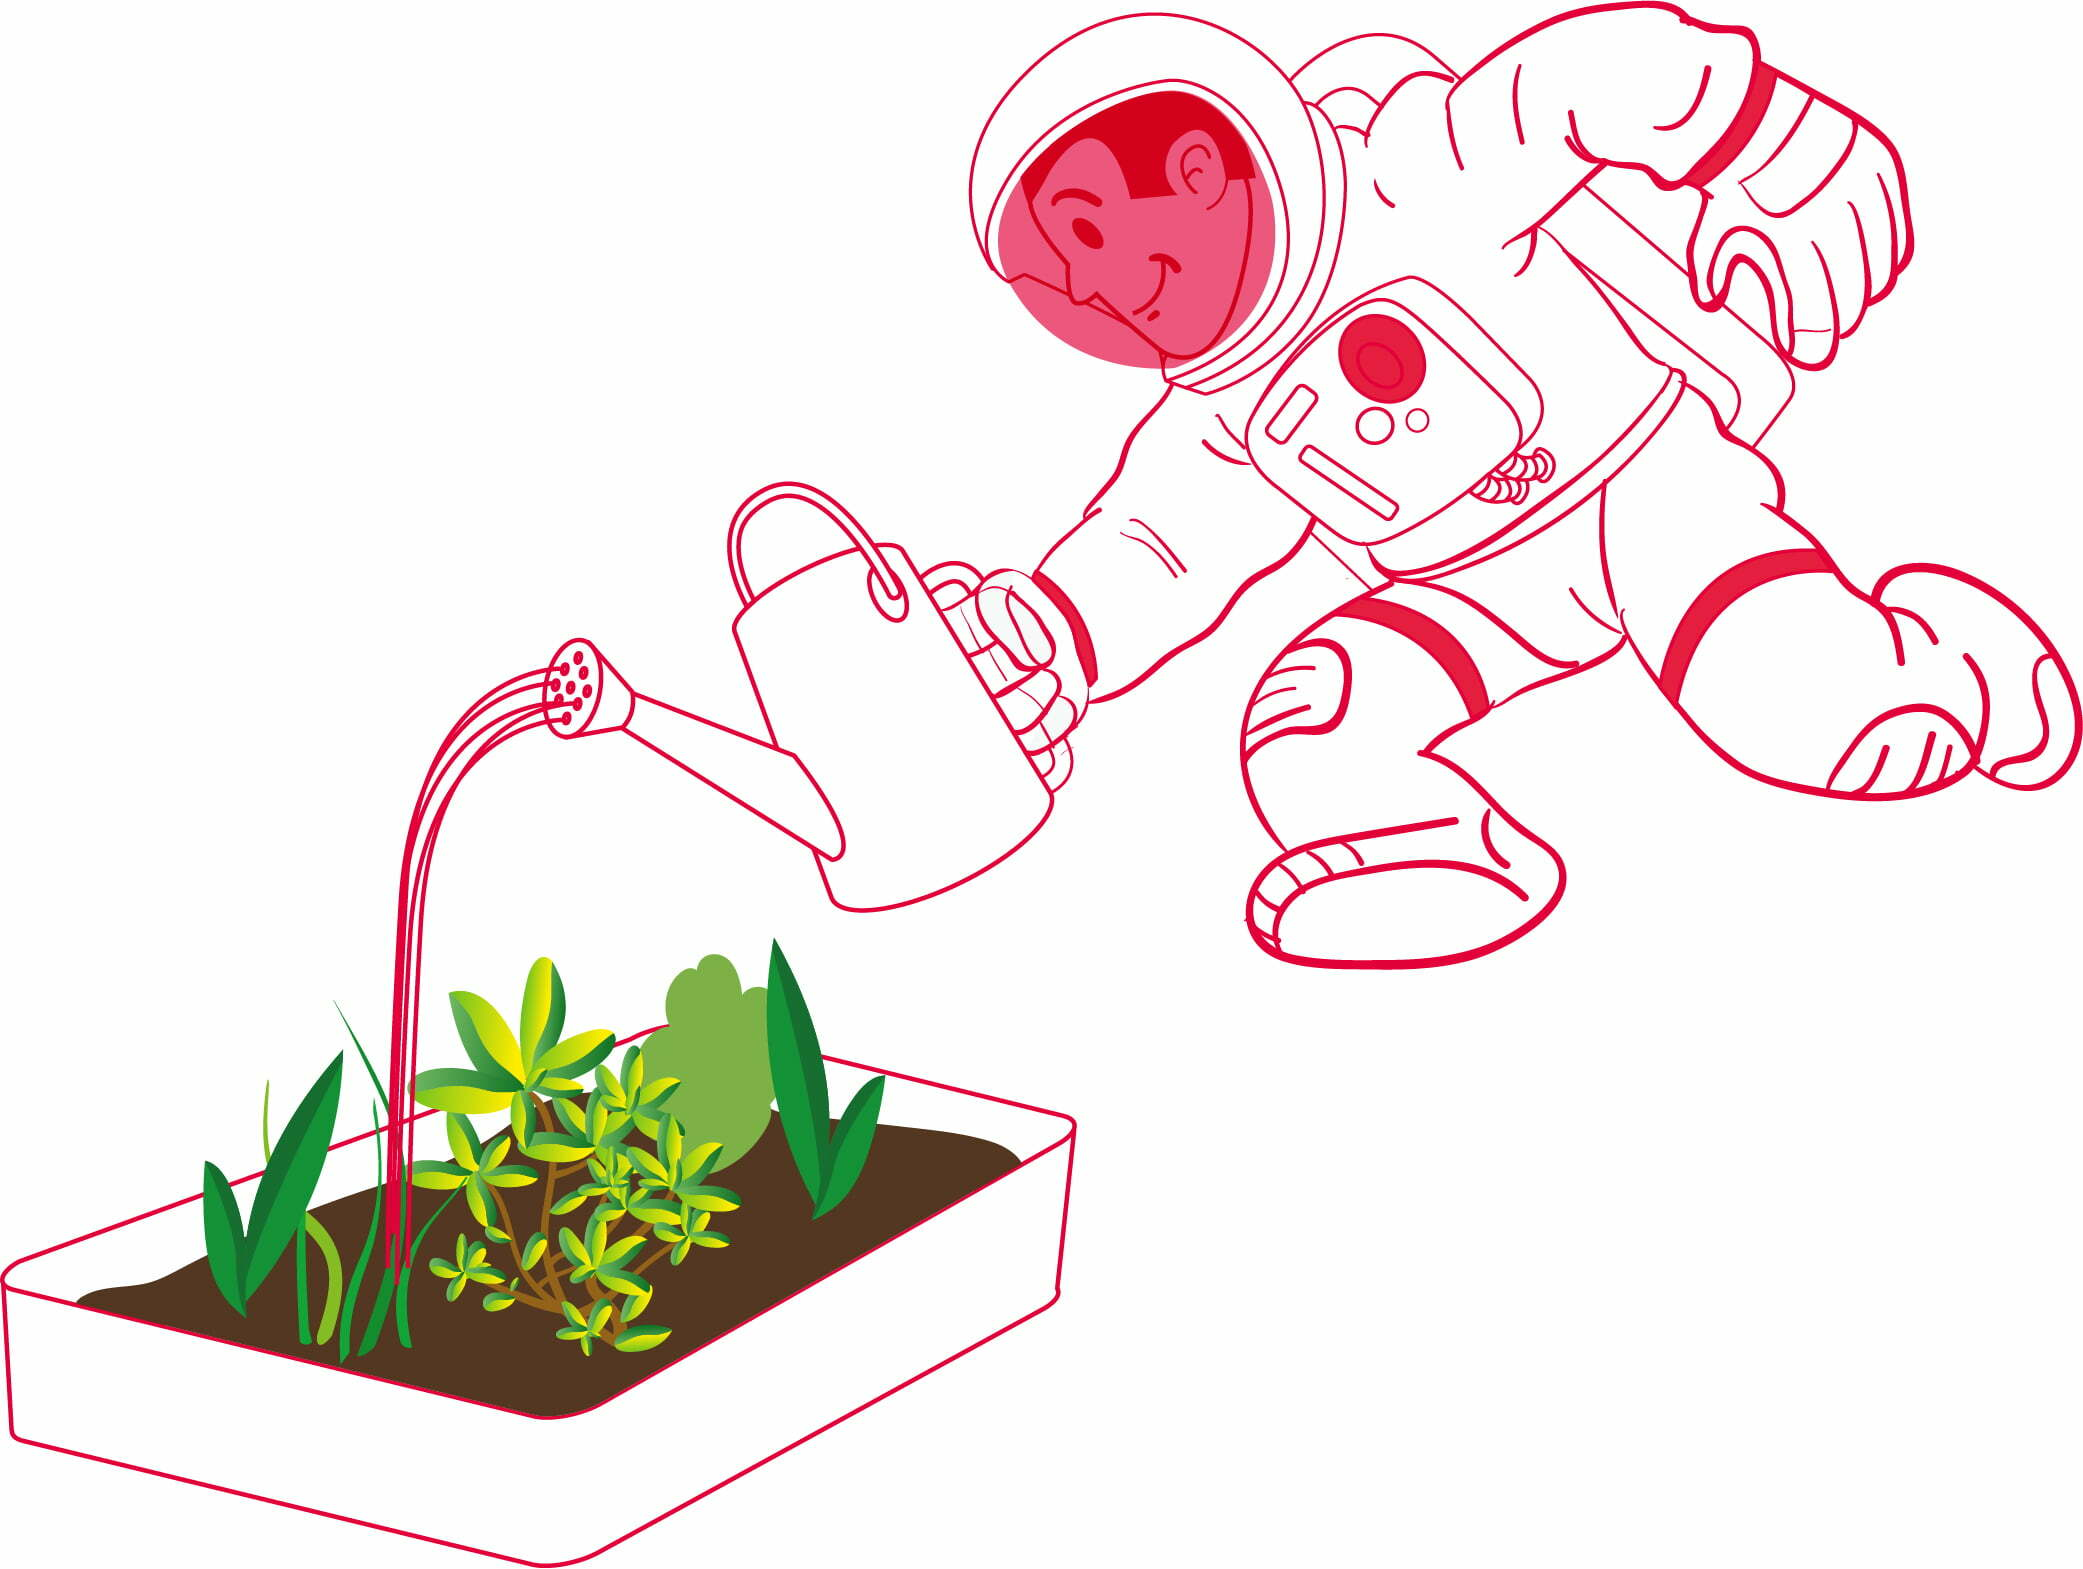 Astrofarmer – Learning about conditions for plant growth